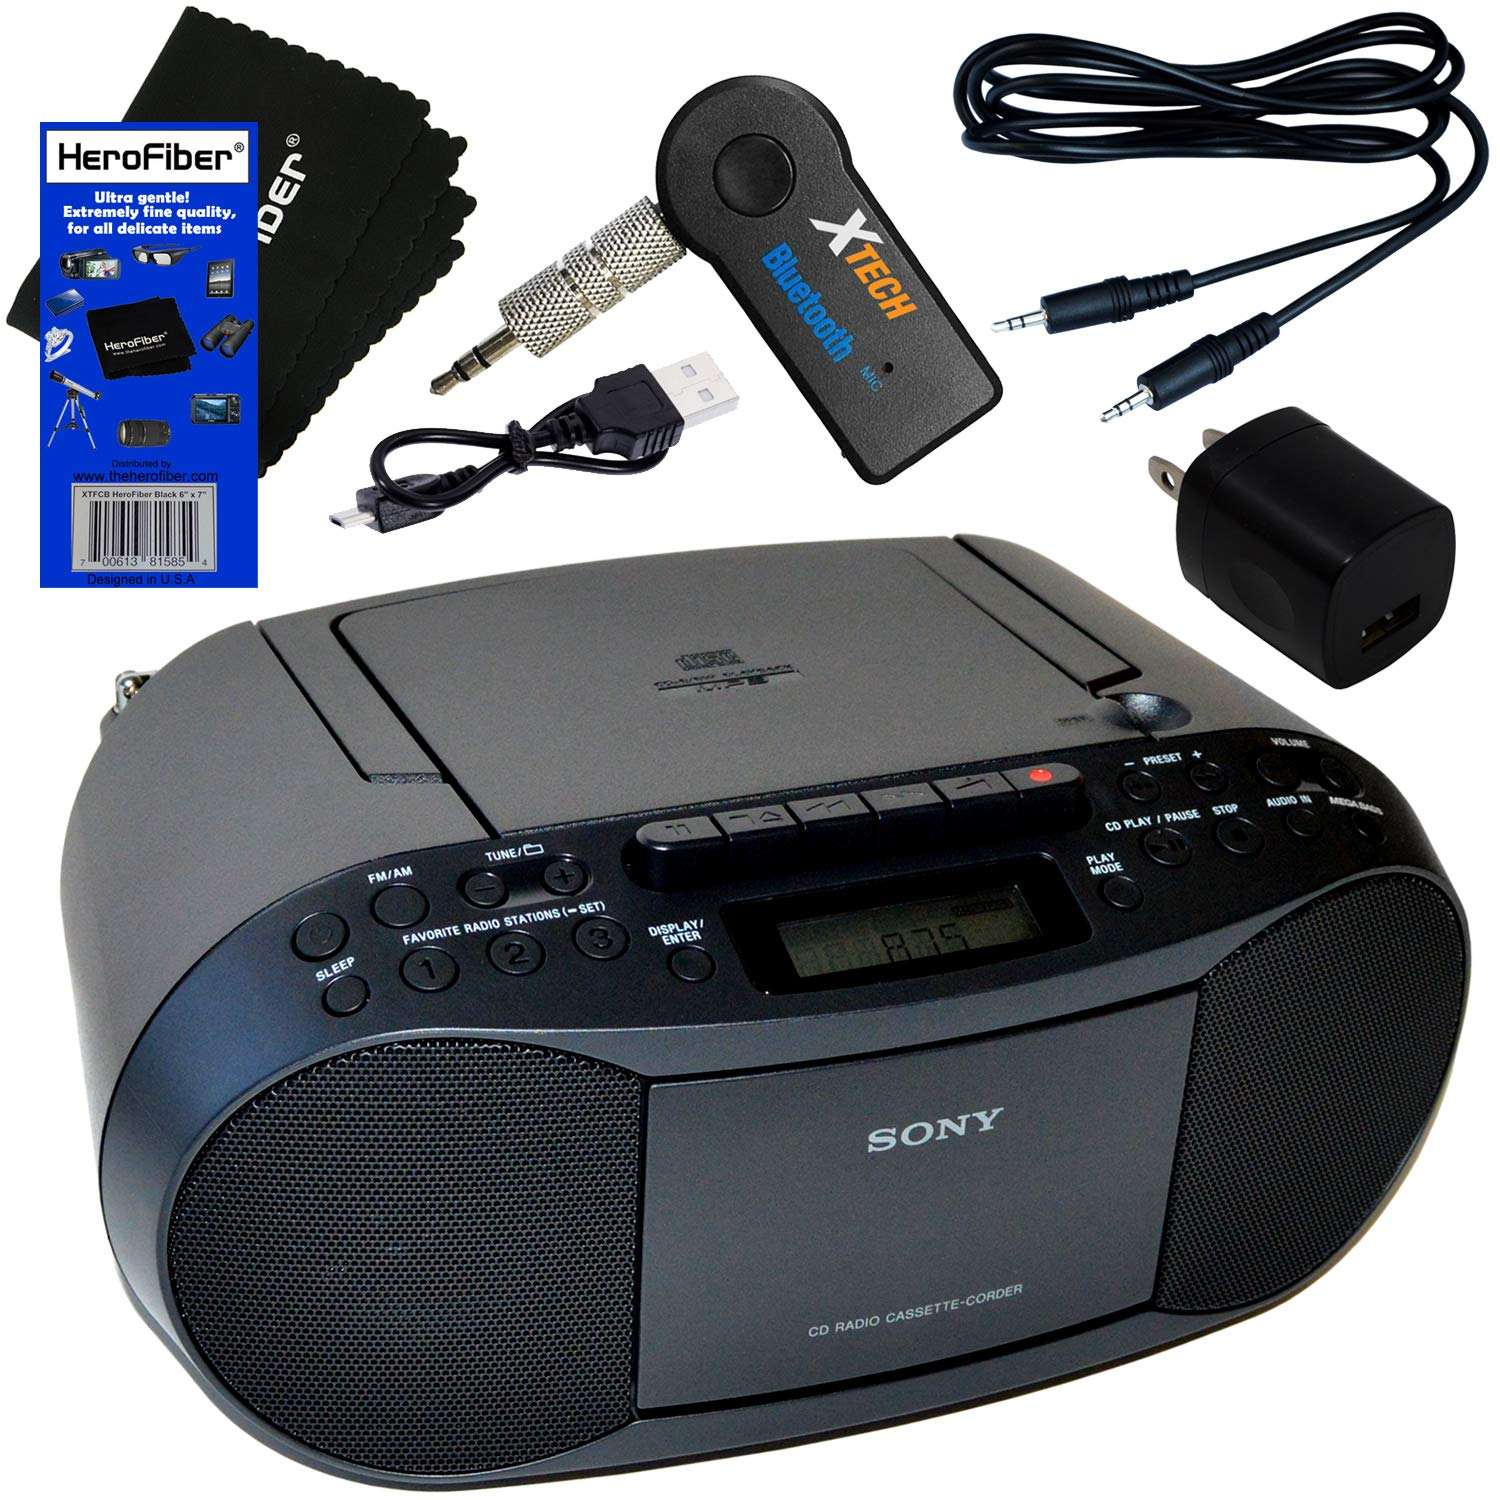 Sony Portable CD Player Boombox with AM/FM Radio & Cassette Tape Player + Wireless Bluetooth Receiver with Charger + Aux Cable for Smartphones, MP3 Players & HeroFiber Ultra Gentle Cleaning Cloth by HeroFiber